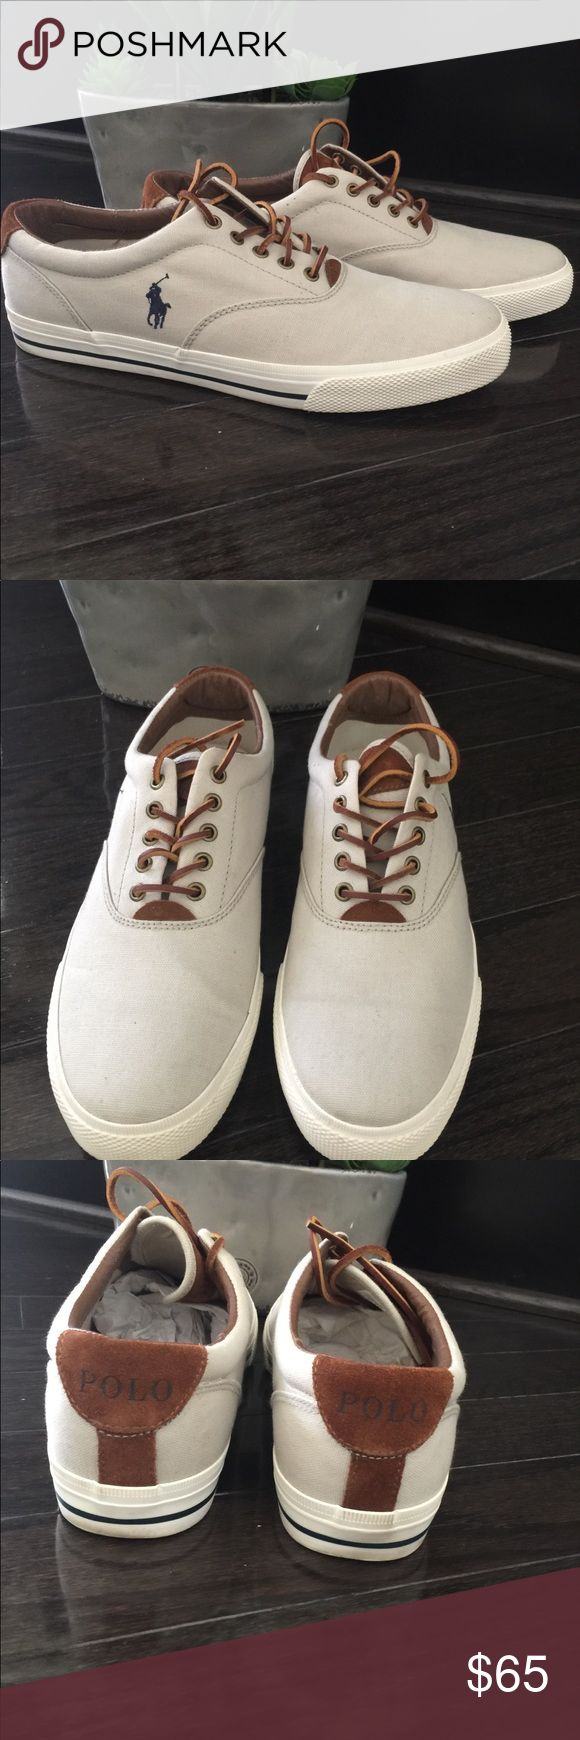 Ralph Lauren Polo Vaughn Shoes- Beige Used/ great condition barely worn. US size 13 UK 12 EUR 47.5 Polo by Ralph Lauren Shoes